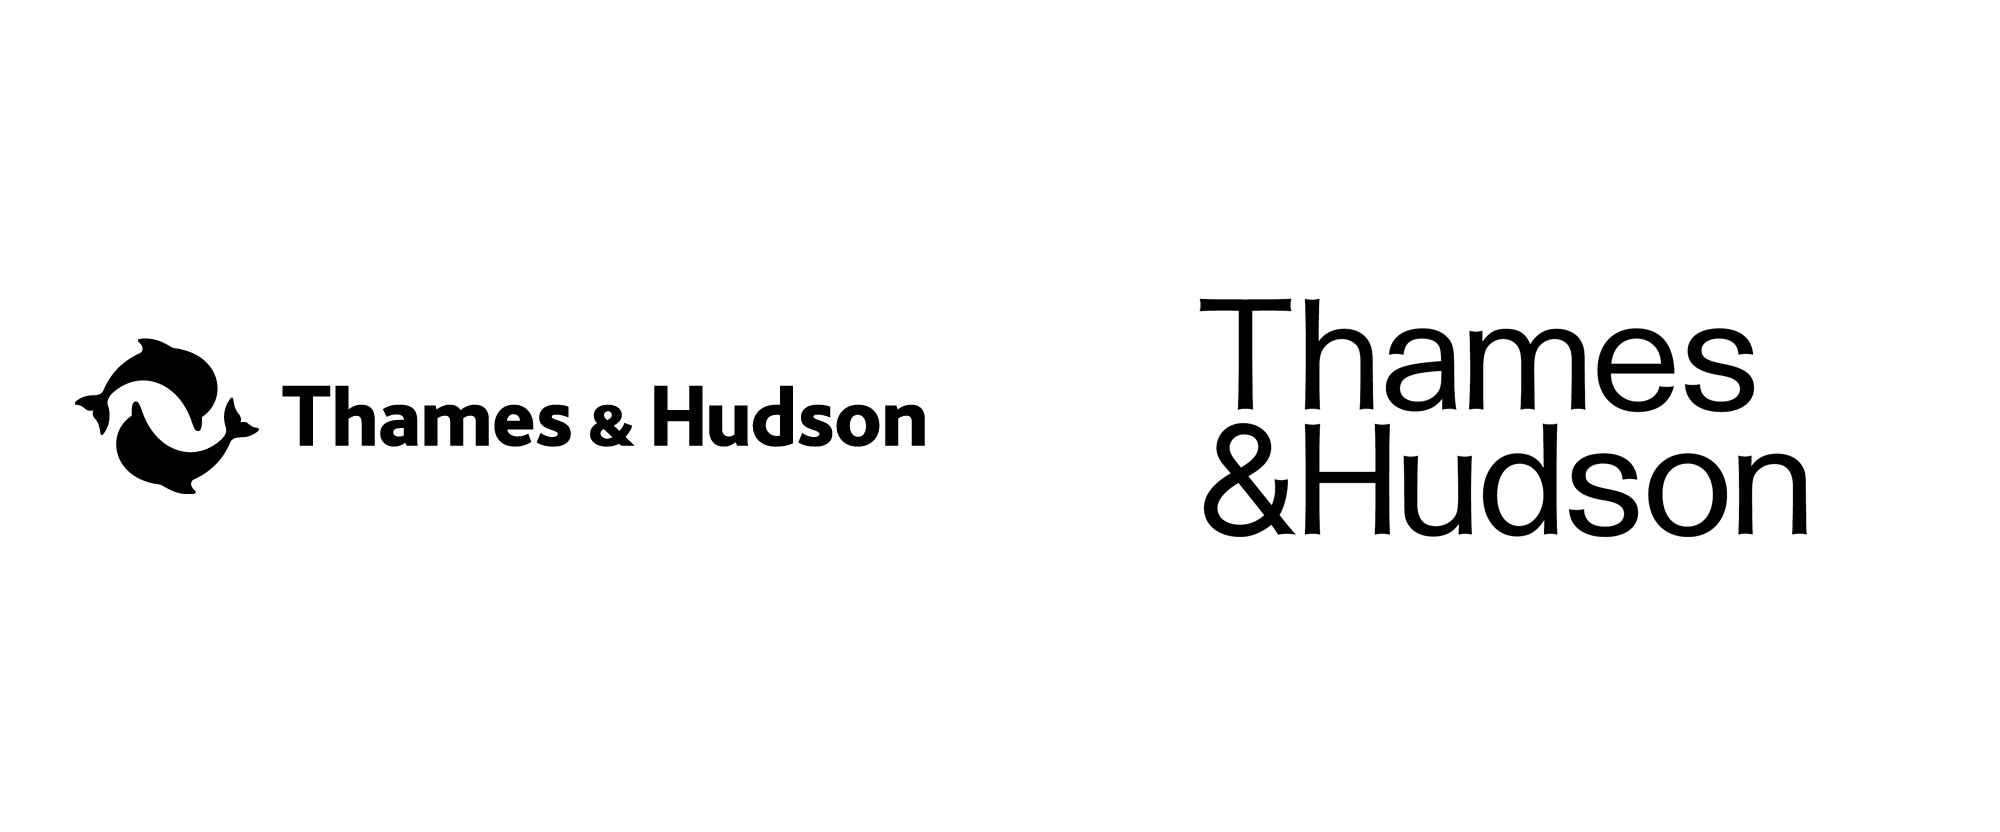 New Logo and Identity for Thames & Hudson by Pentagram